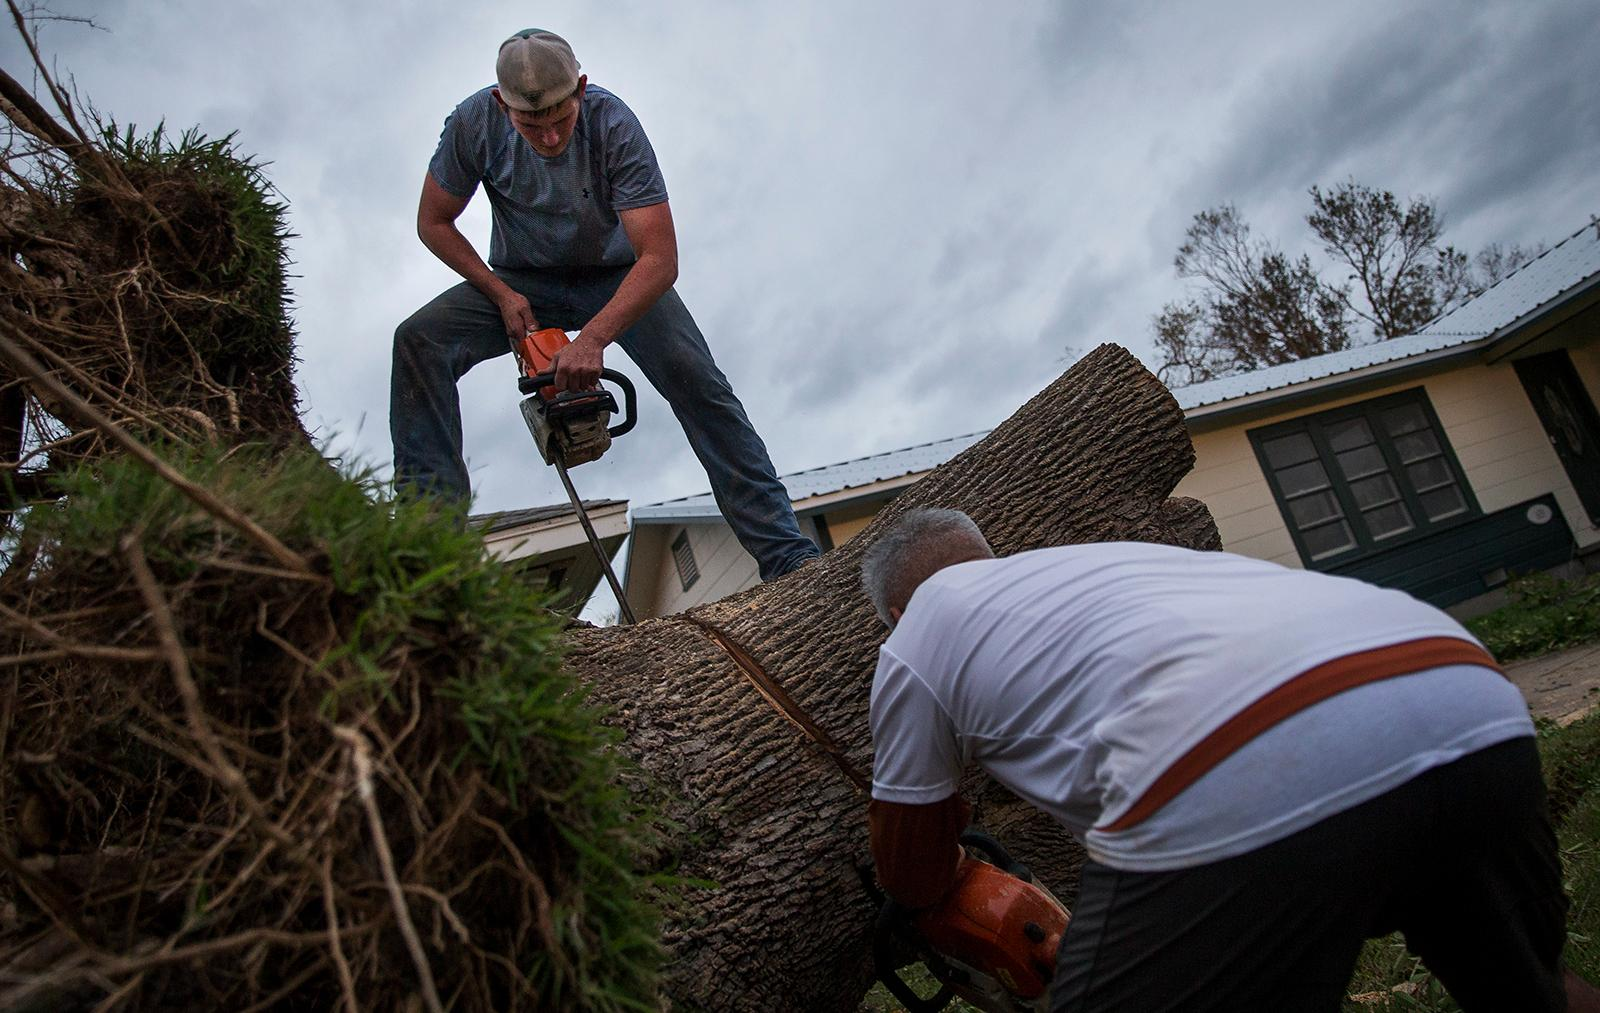 Wyatt Wasicek uses a chainsaw to cut a tree stump in Refugio, Texas, Monday, Aug. 28, 2017. (Nick Wagner/Austin American-Statesman via AP)